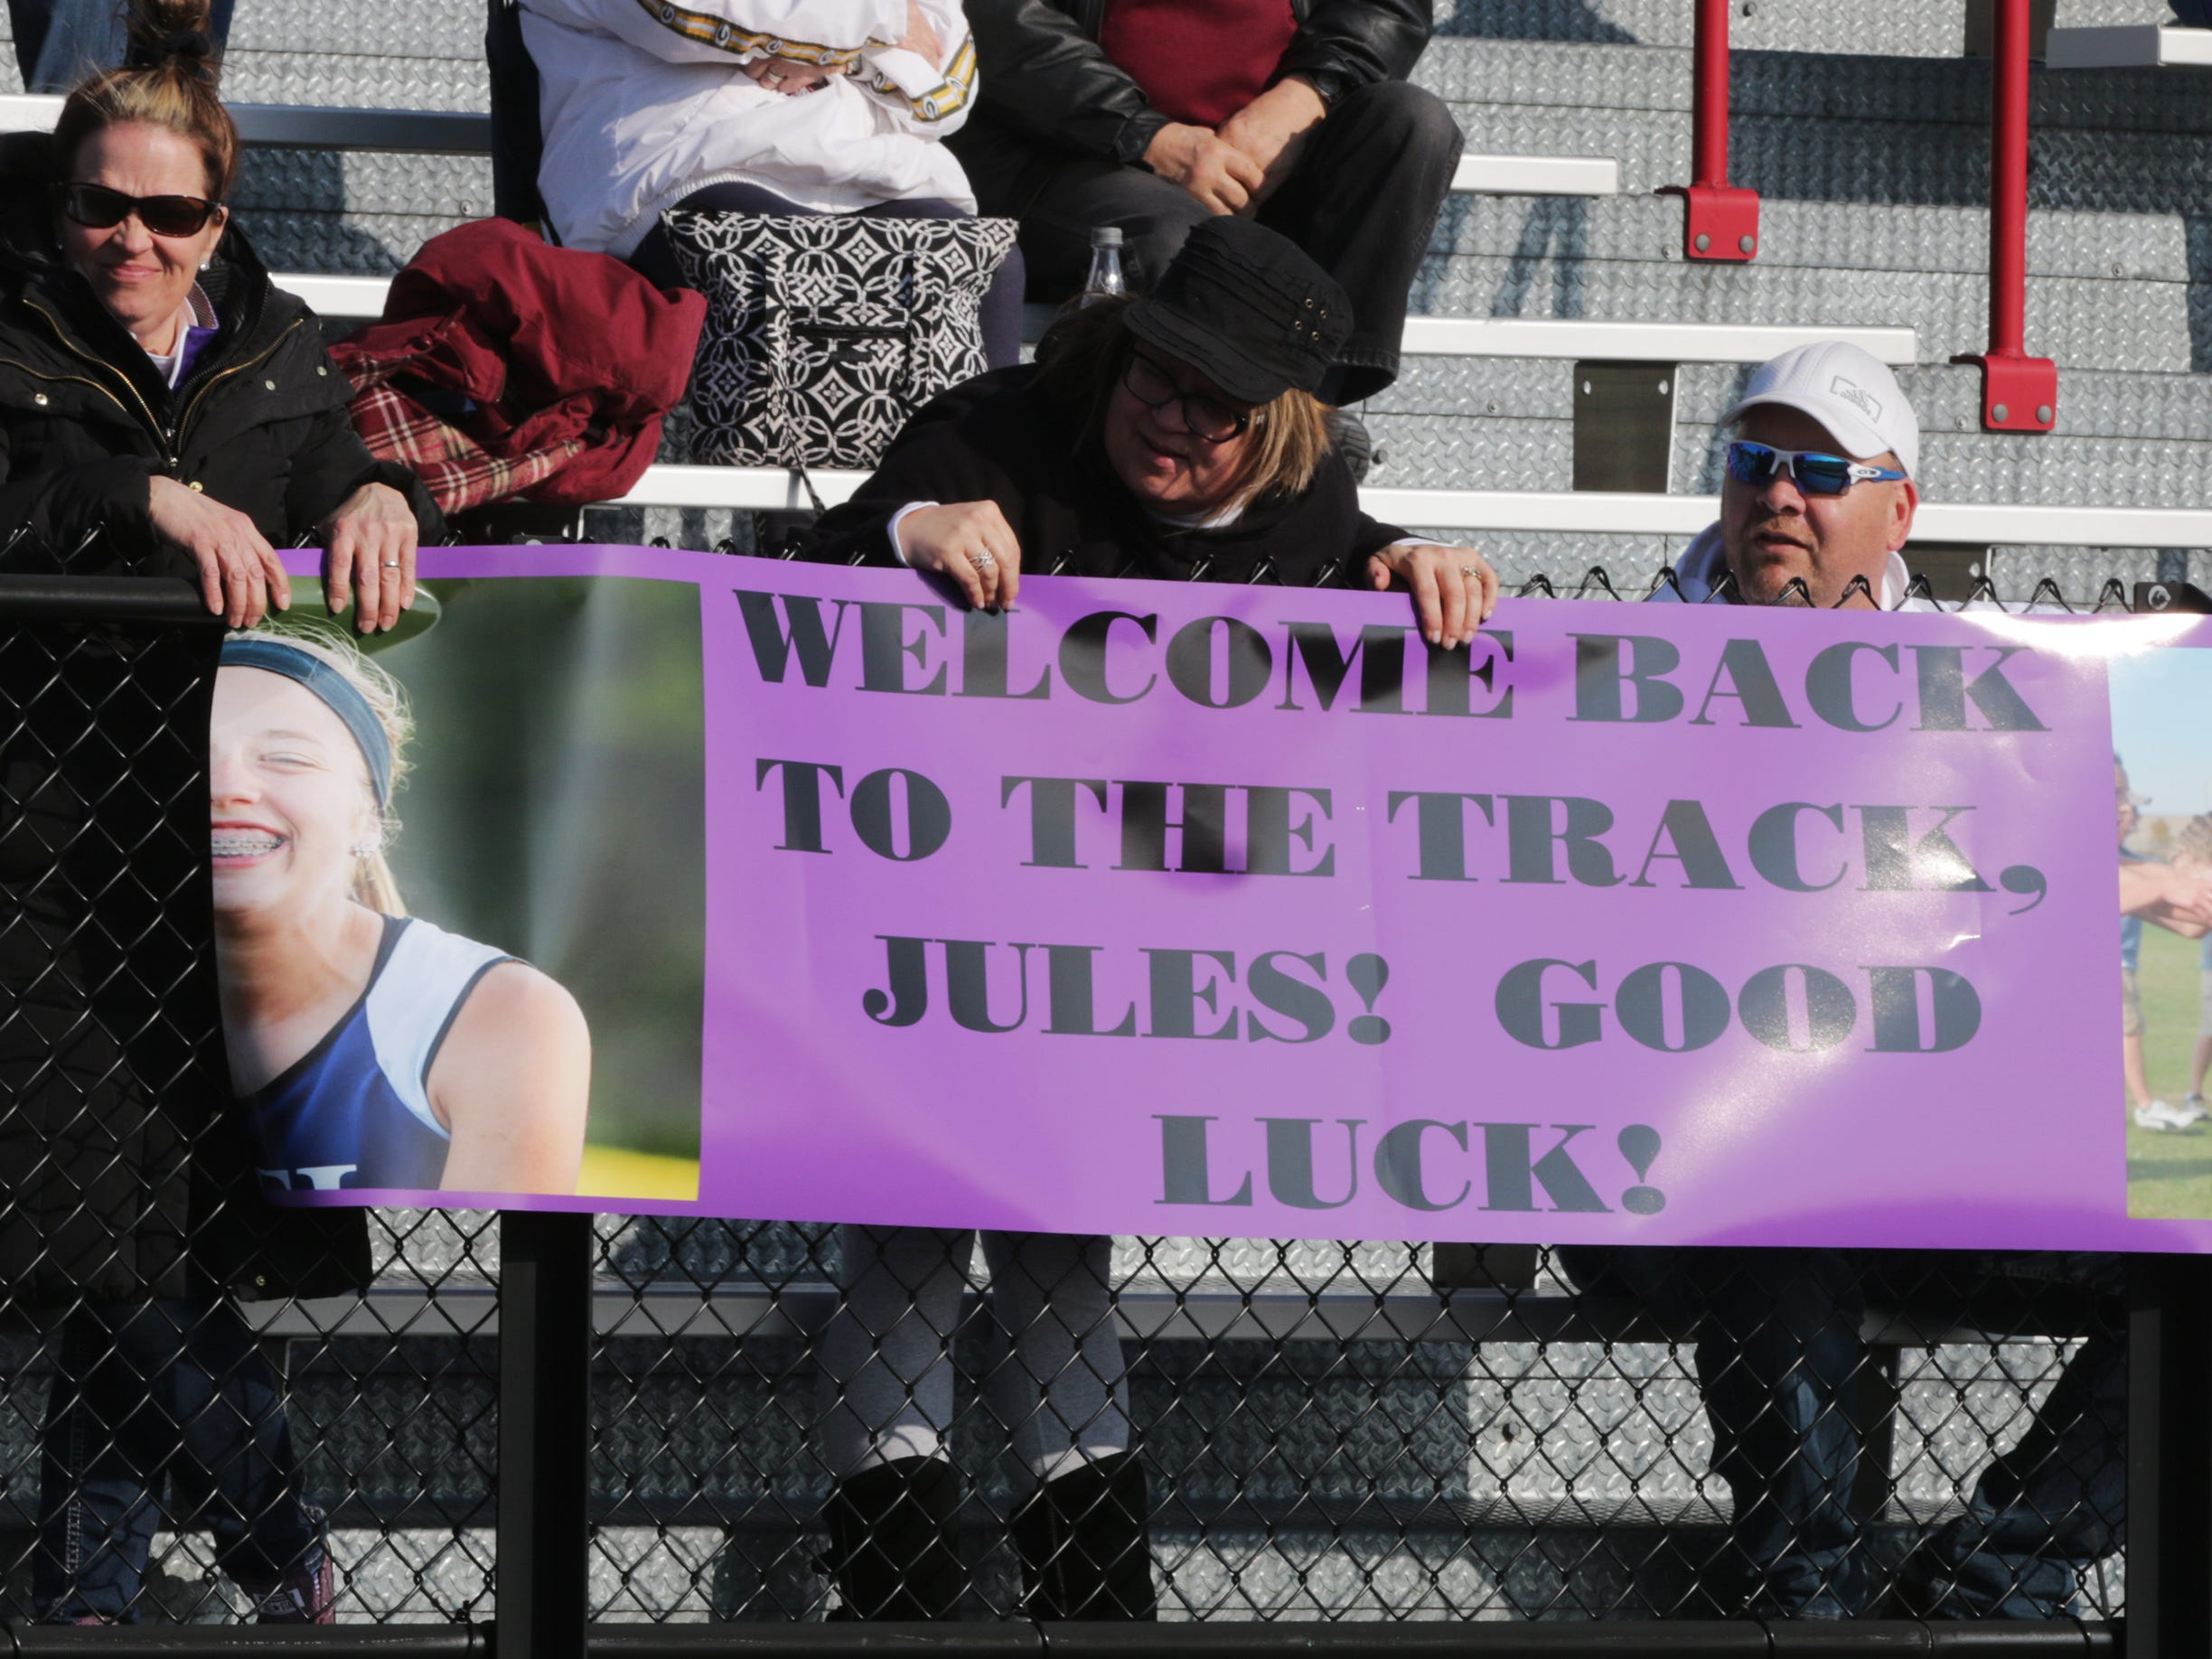 Family members of Julia Koenig proudly held a banner as Koenig ran her first event after being cleared to run following ACL surgery, Friday, April 5, 2019, in Oostburg, Wis.